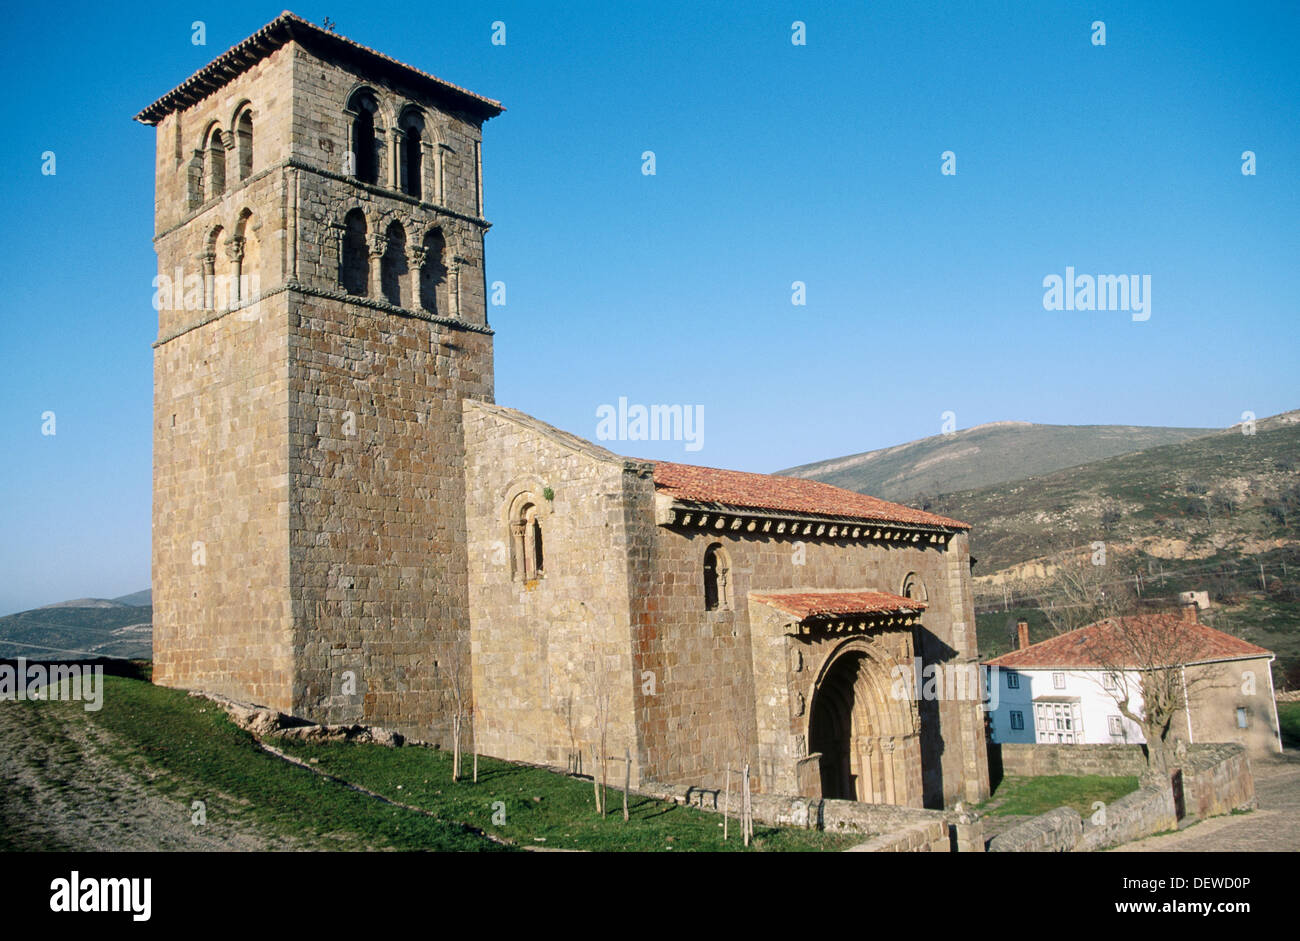 Romanesque collegiate church (XIIth century). Cervatos. Antabria. Spain. - Stock Image